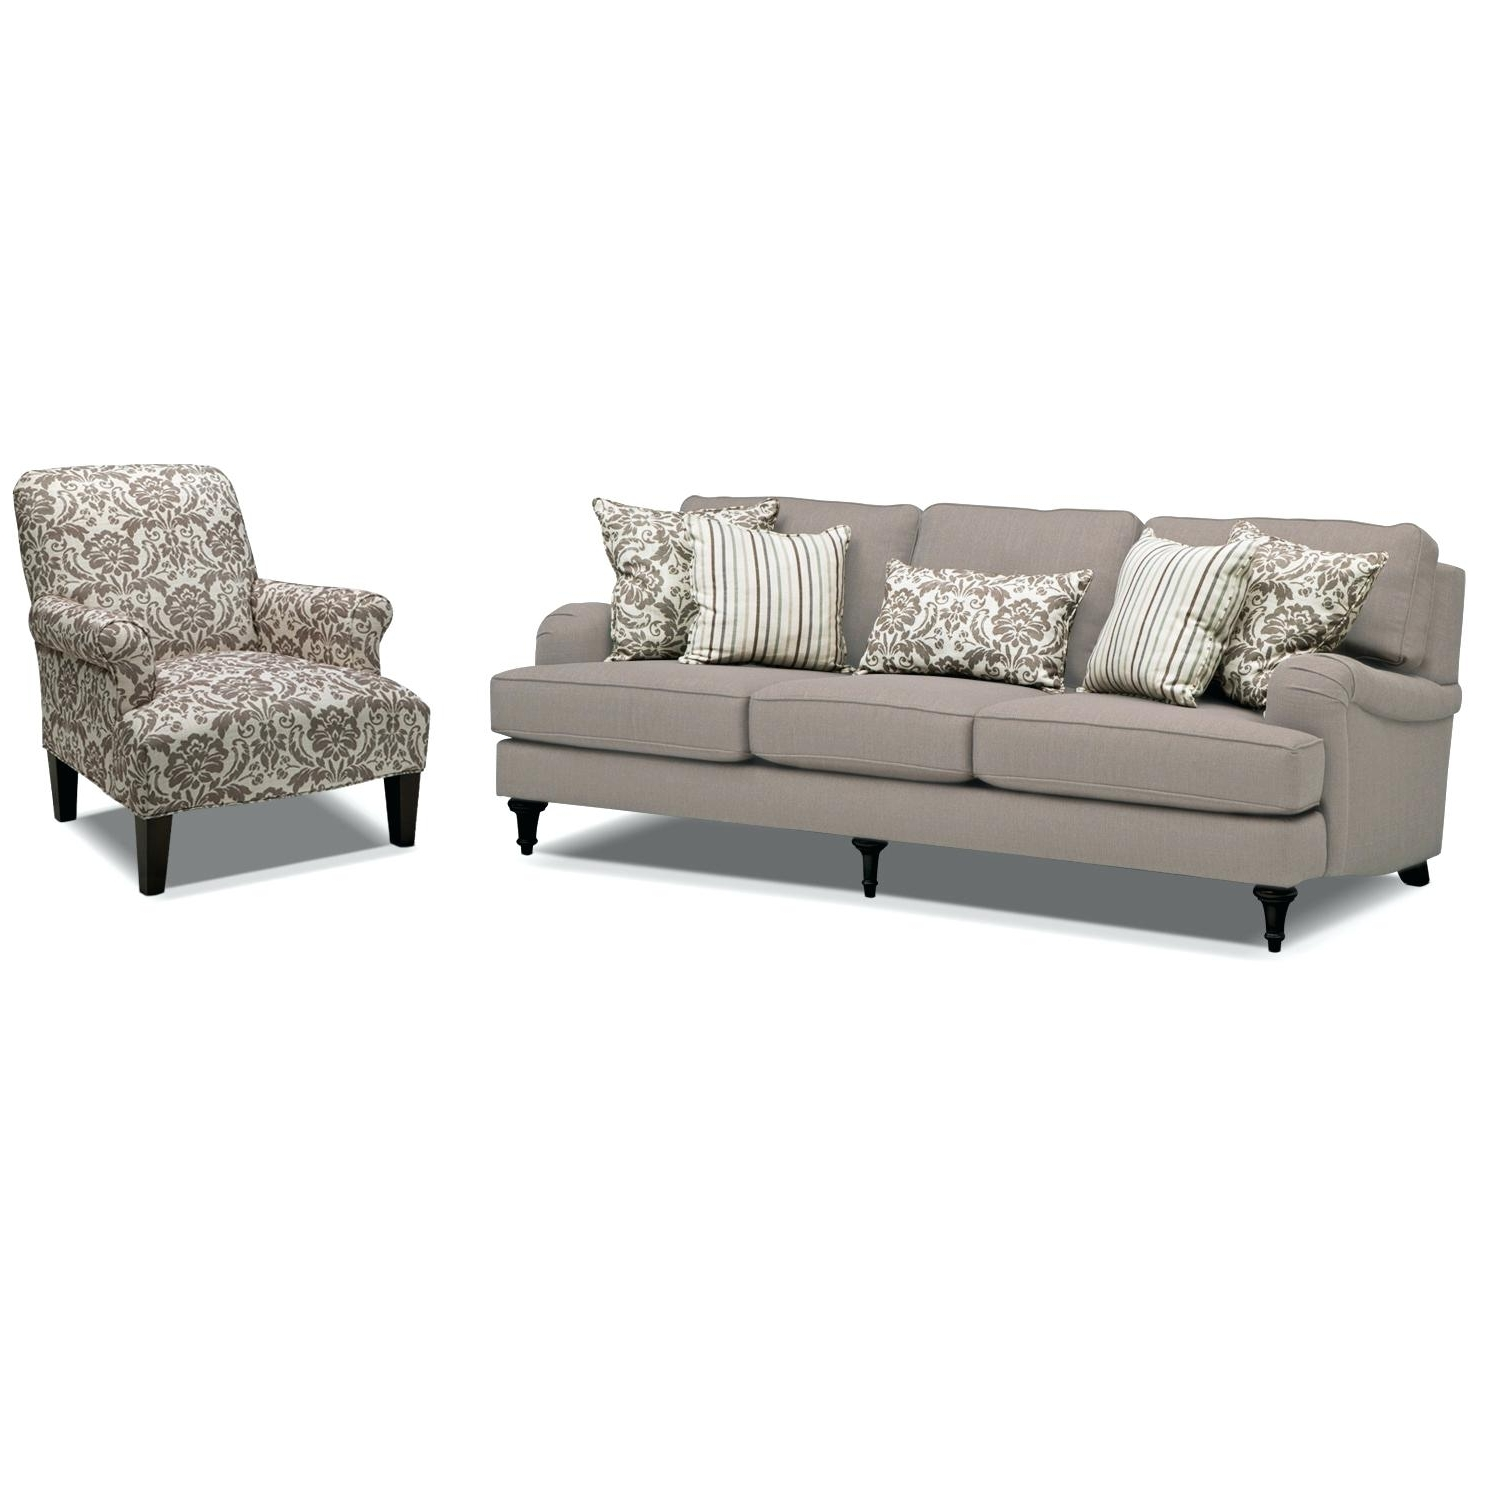 Most Popular Sofa And Accent Chair Sets Pertaining To Accent Chair Sets Setup Cheap Sofa And – Poikilothermia (View 11 of 20)